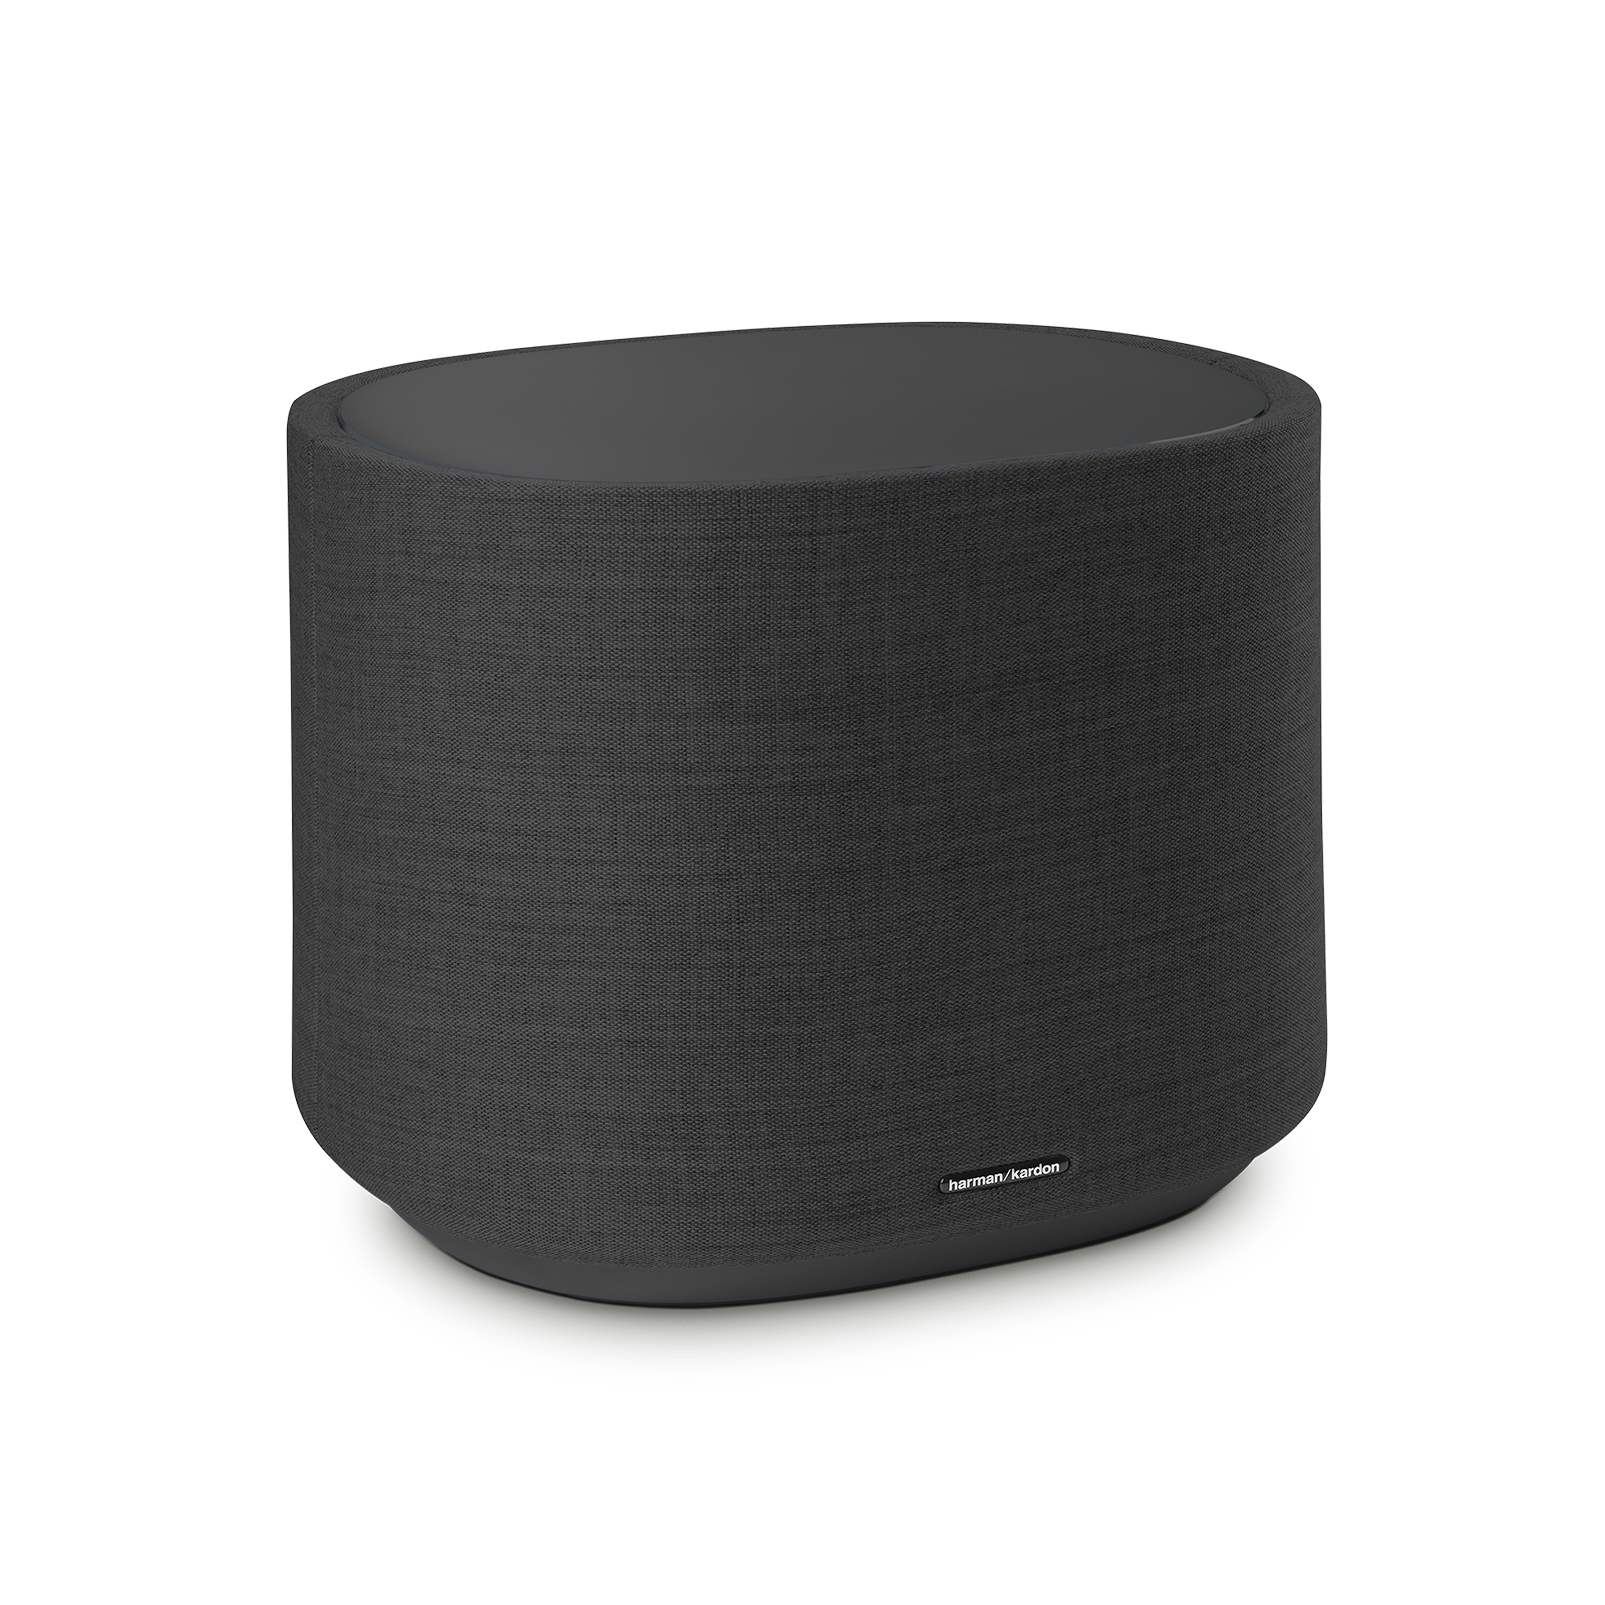 Harman Kardon Citation Sub - Black - Thundering bass for movies and music - Hero